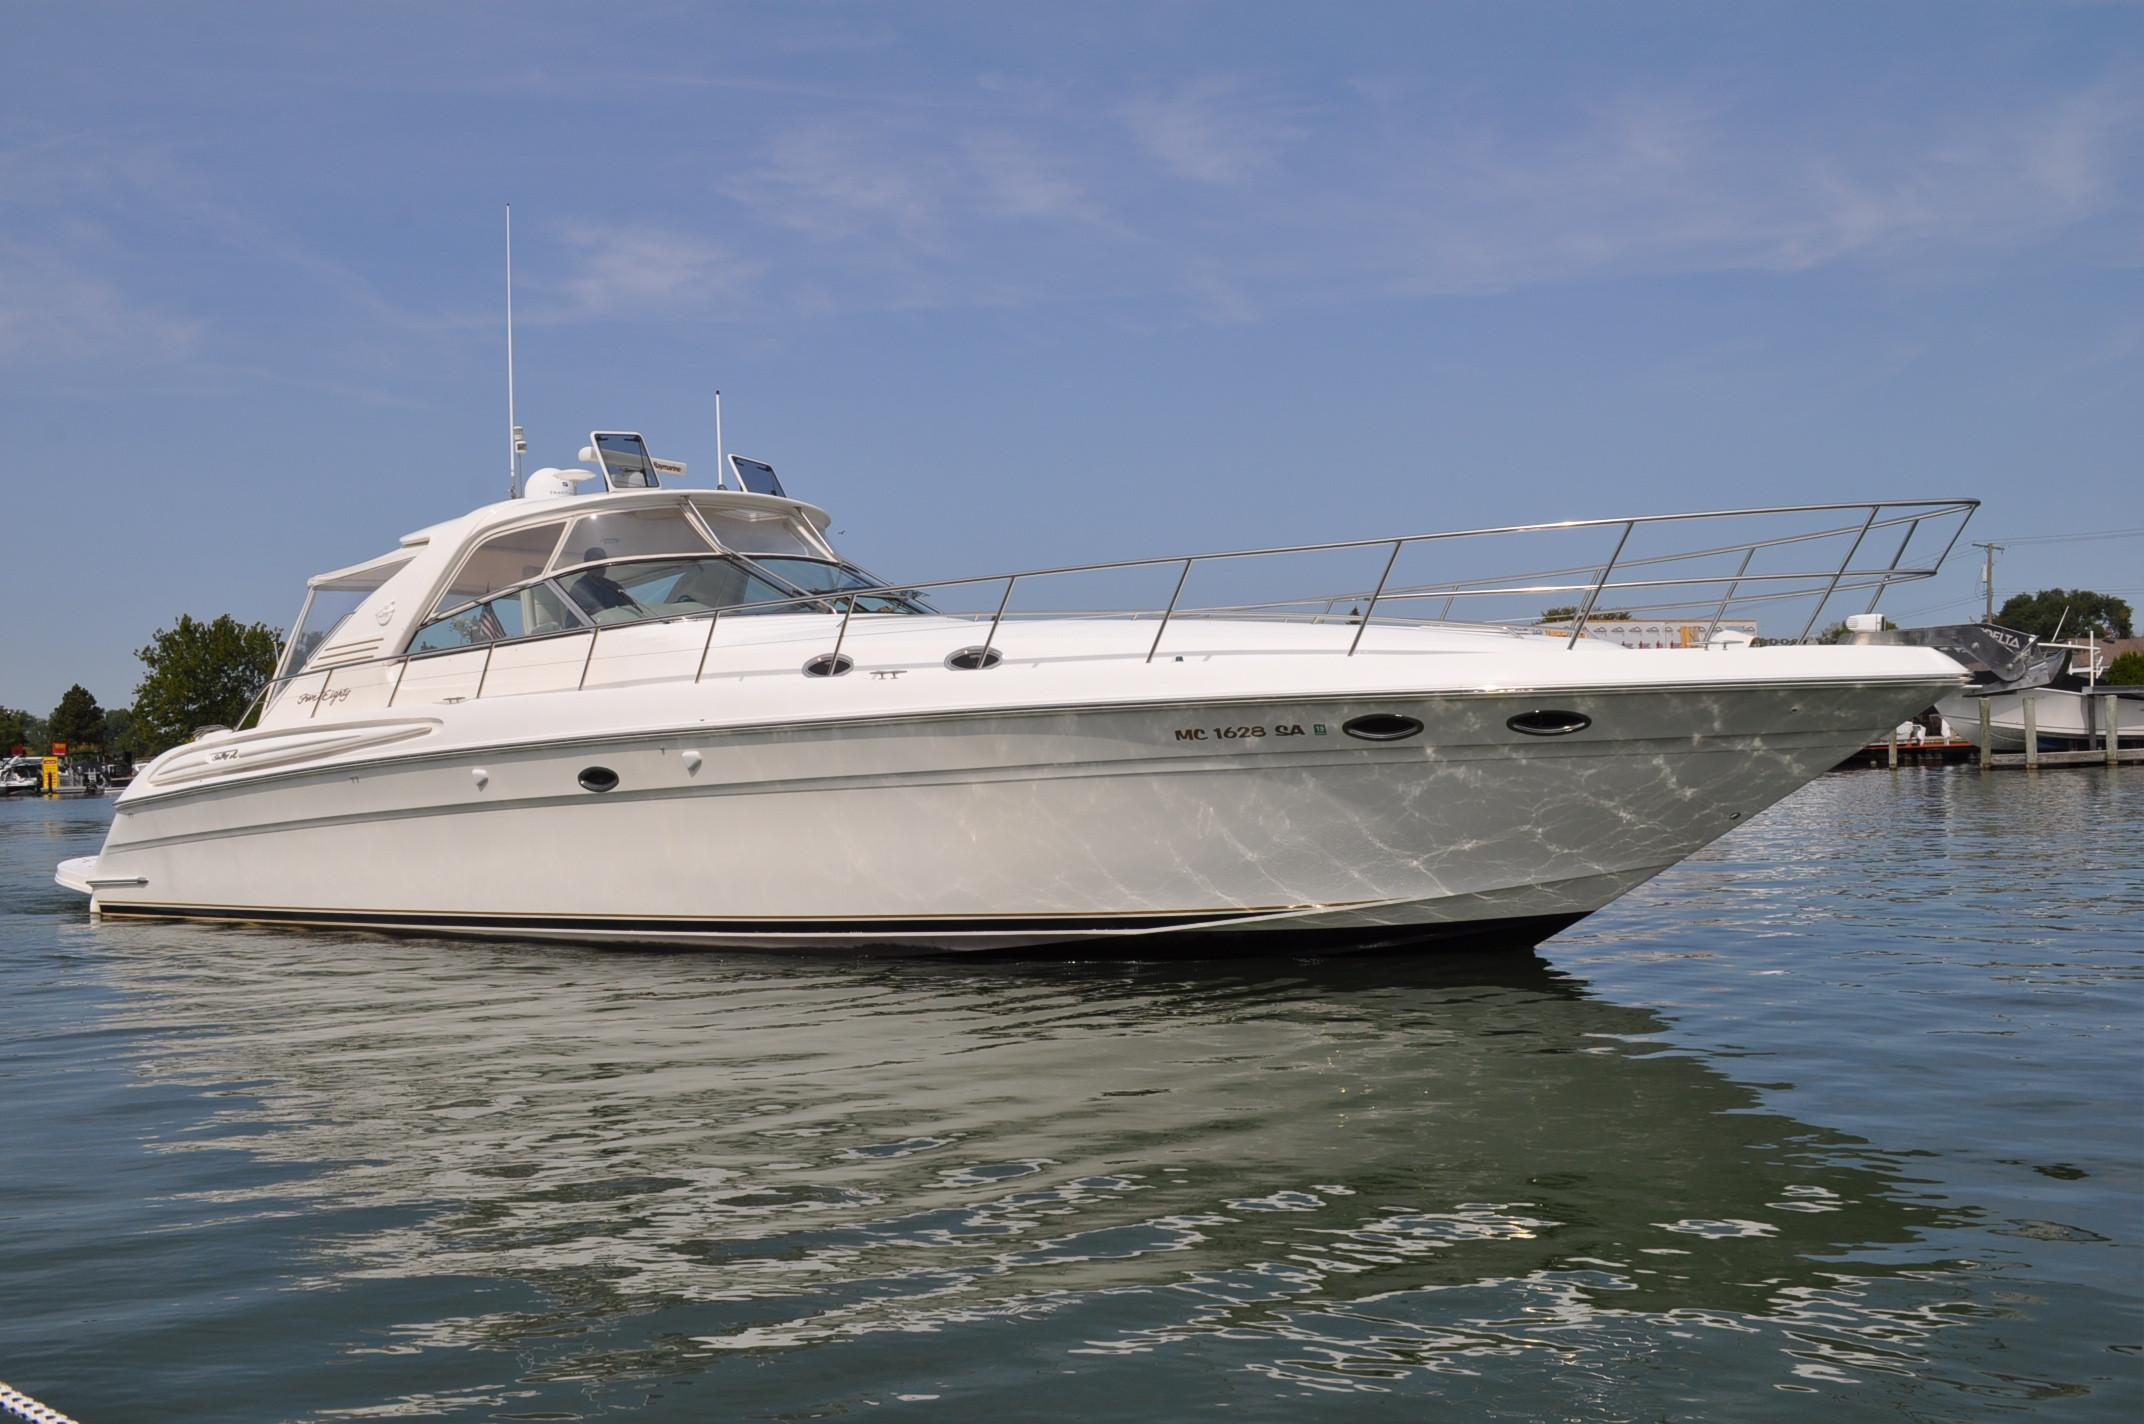 2000 Sea Ray 580 Super Sun Sport Power Boat For Sale